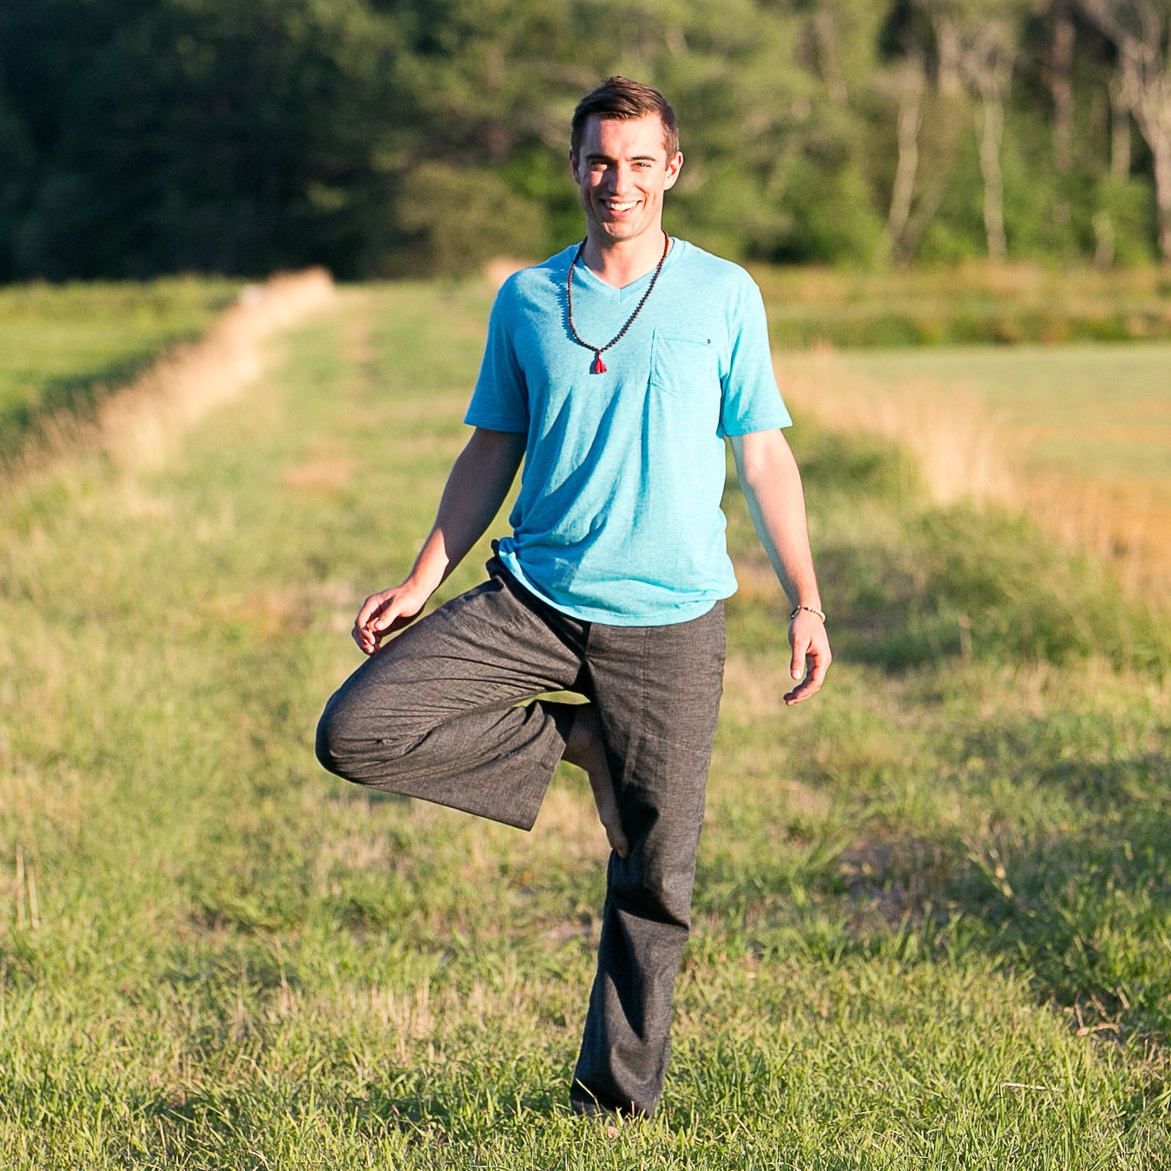 Forrest Dwyer RYT-200Forrest received his 200 hr training through the Pranotthan School of Yoga, hosted at All That Matters in 2016. He believes yoga is a path that is proven to lead people to a deep understanding of their internal world.